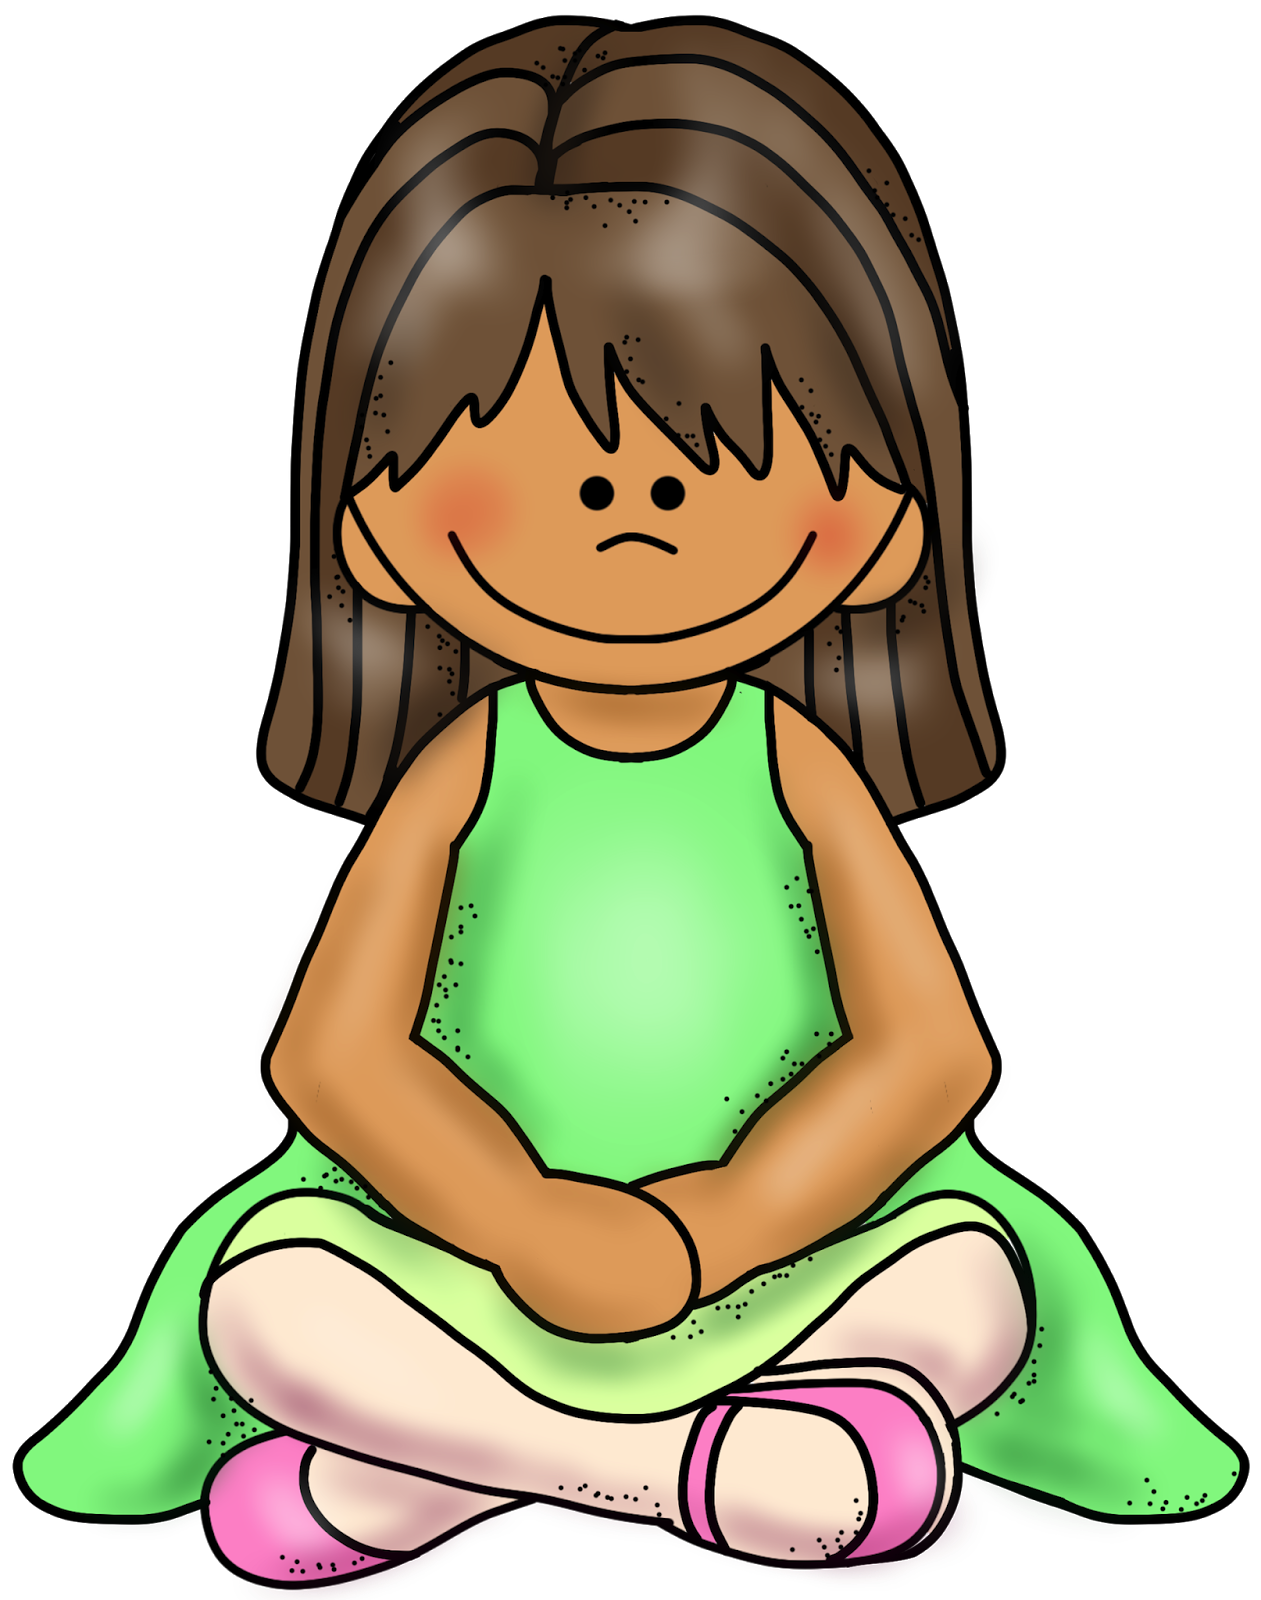 Children sitting criss cross clipart clip library library Criss Cross Applesauce Clipart | Free download best Criss Cross ... clip library library